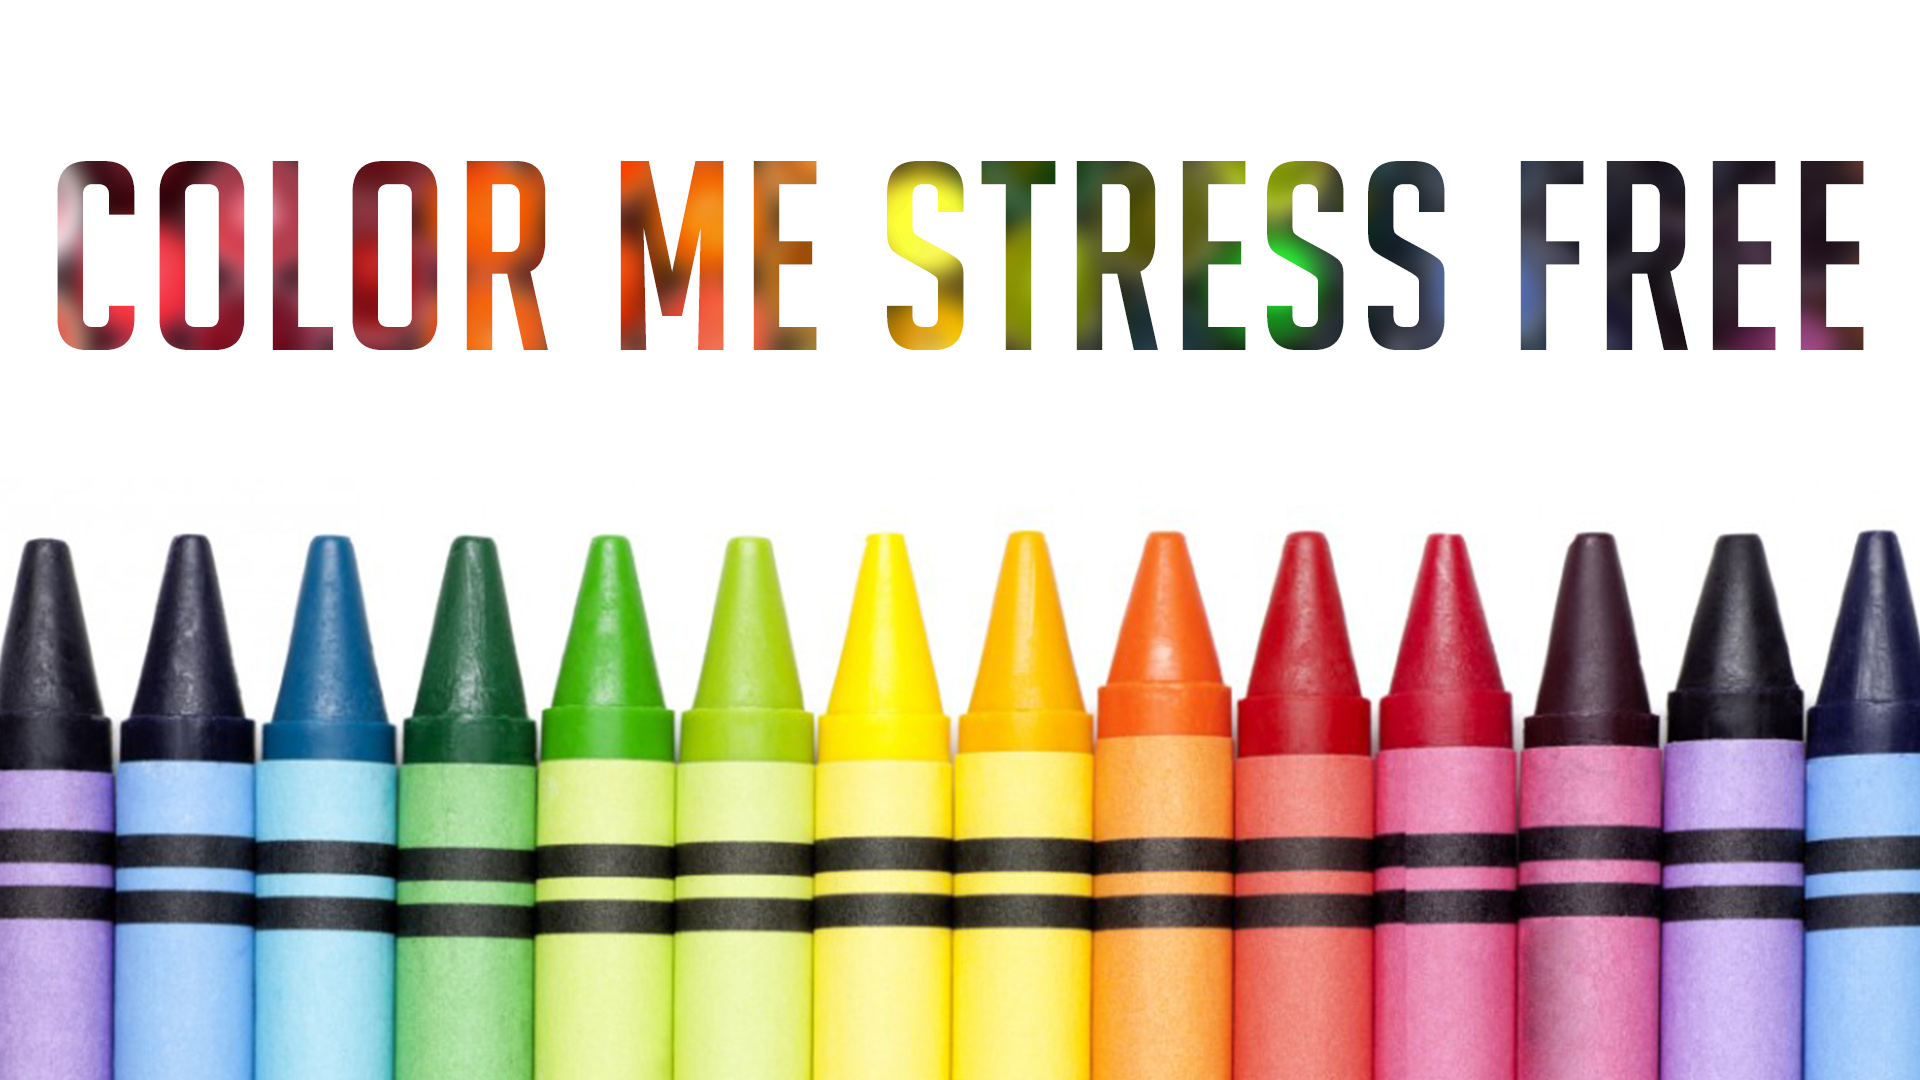 - Color Me Stress Free: A Mental Health And Art Initiative (A